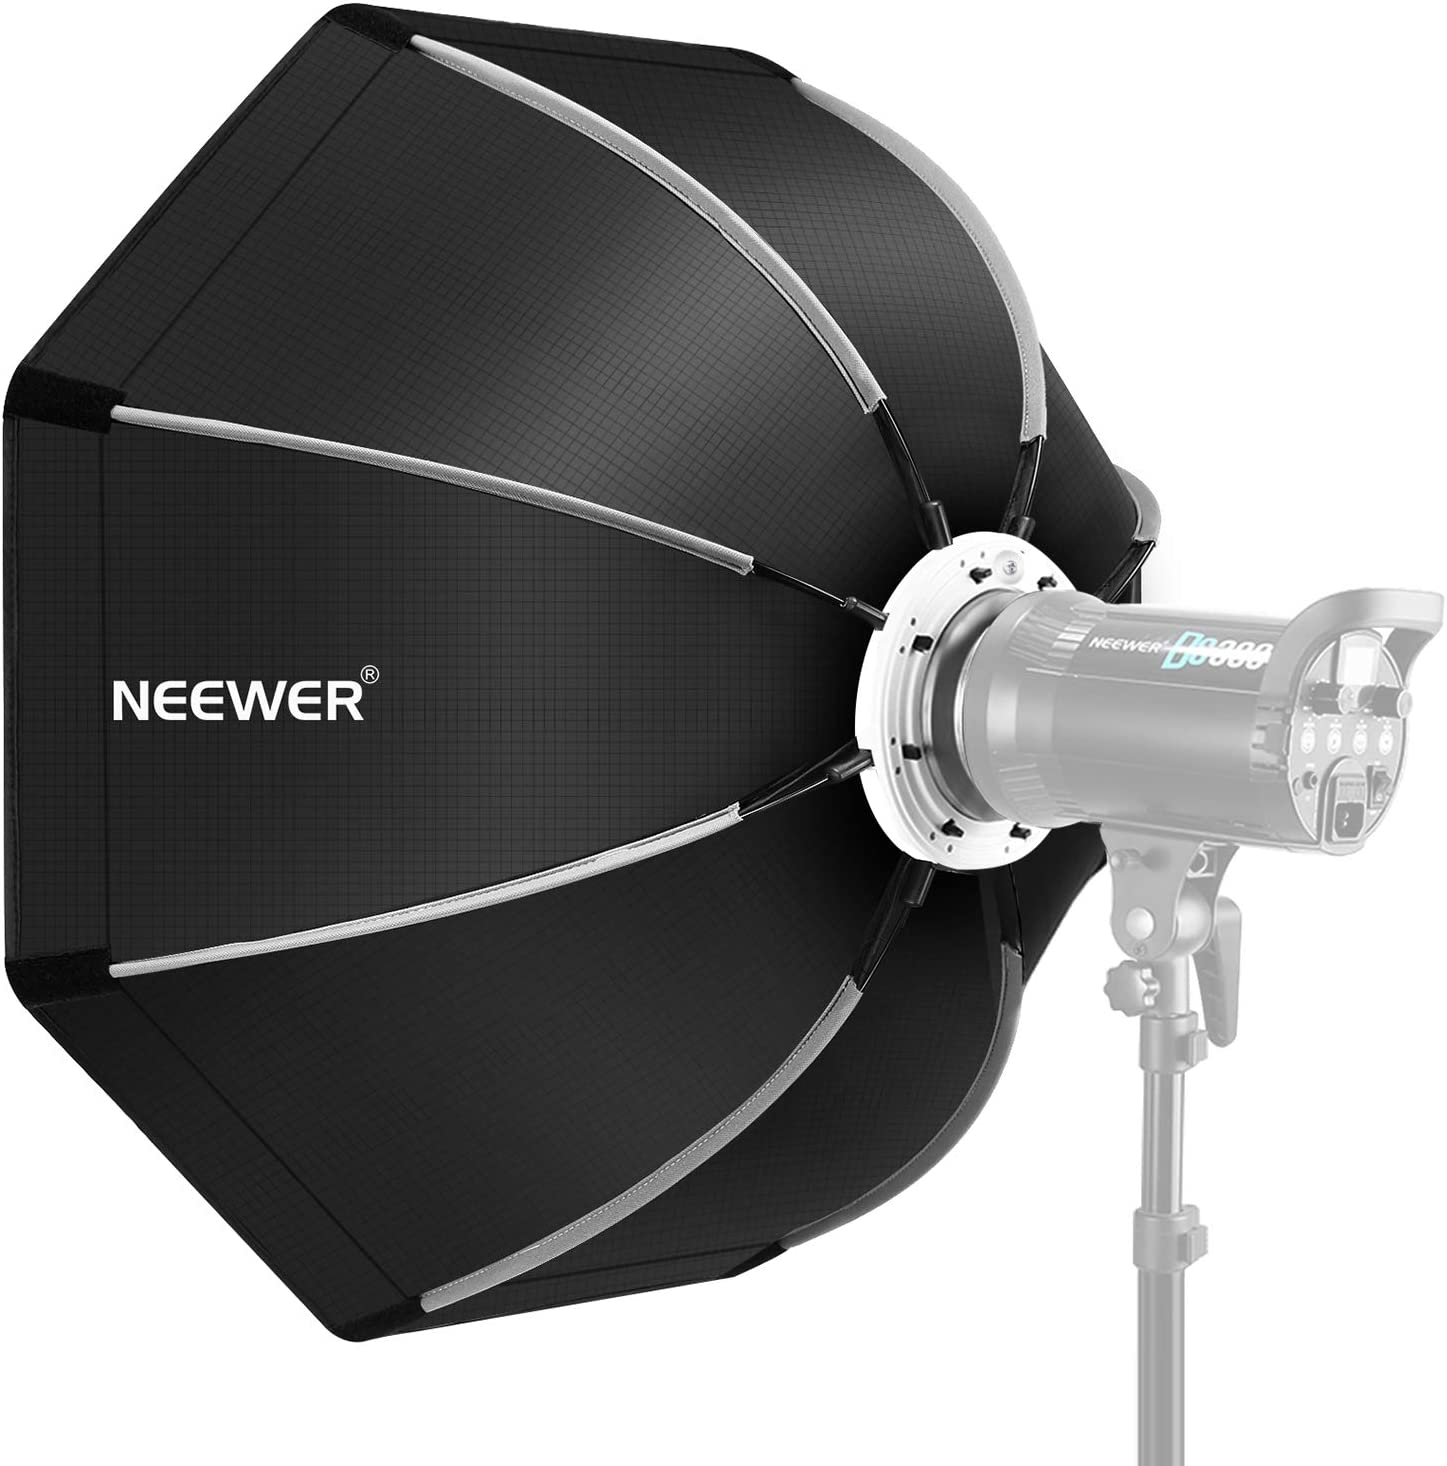 Neewer 35.4 inches/90 Centimeters Foldable Octagonal Softbox with Bowens Mount Speedring, Carrying Case for Speedlite Studio Flash Monolight,Portrait and Product Photography